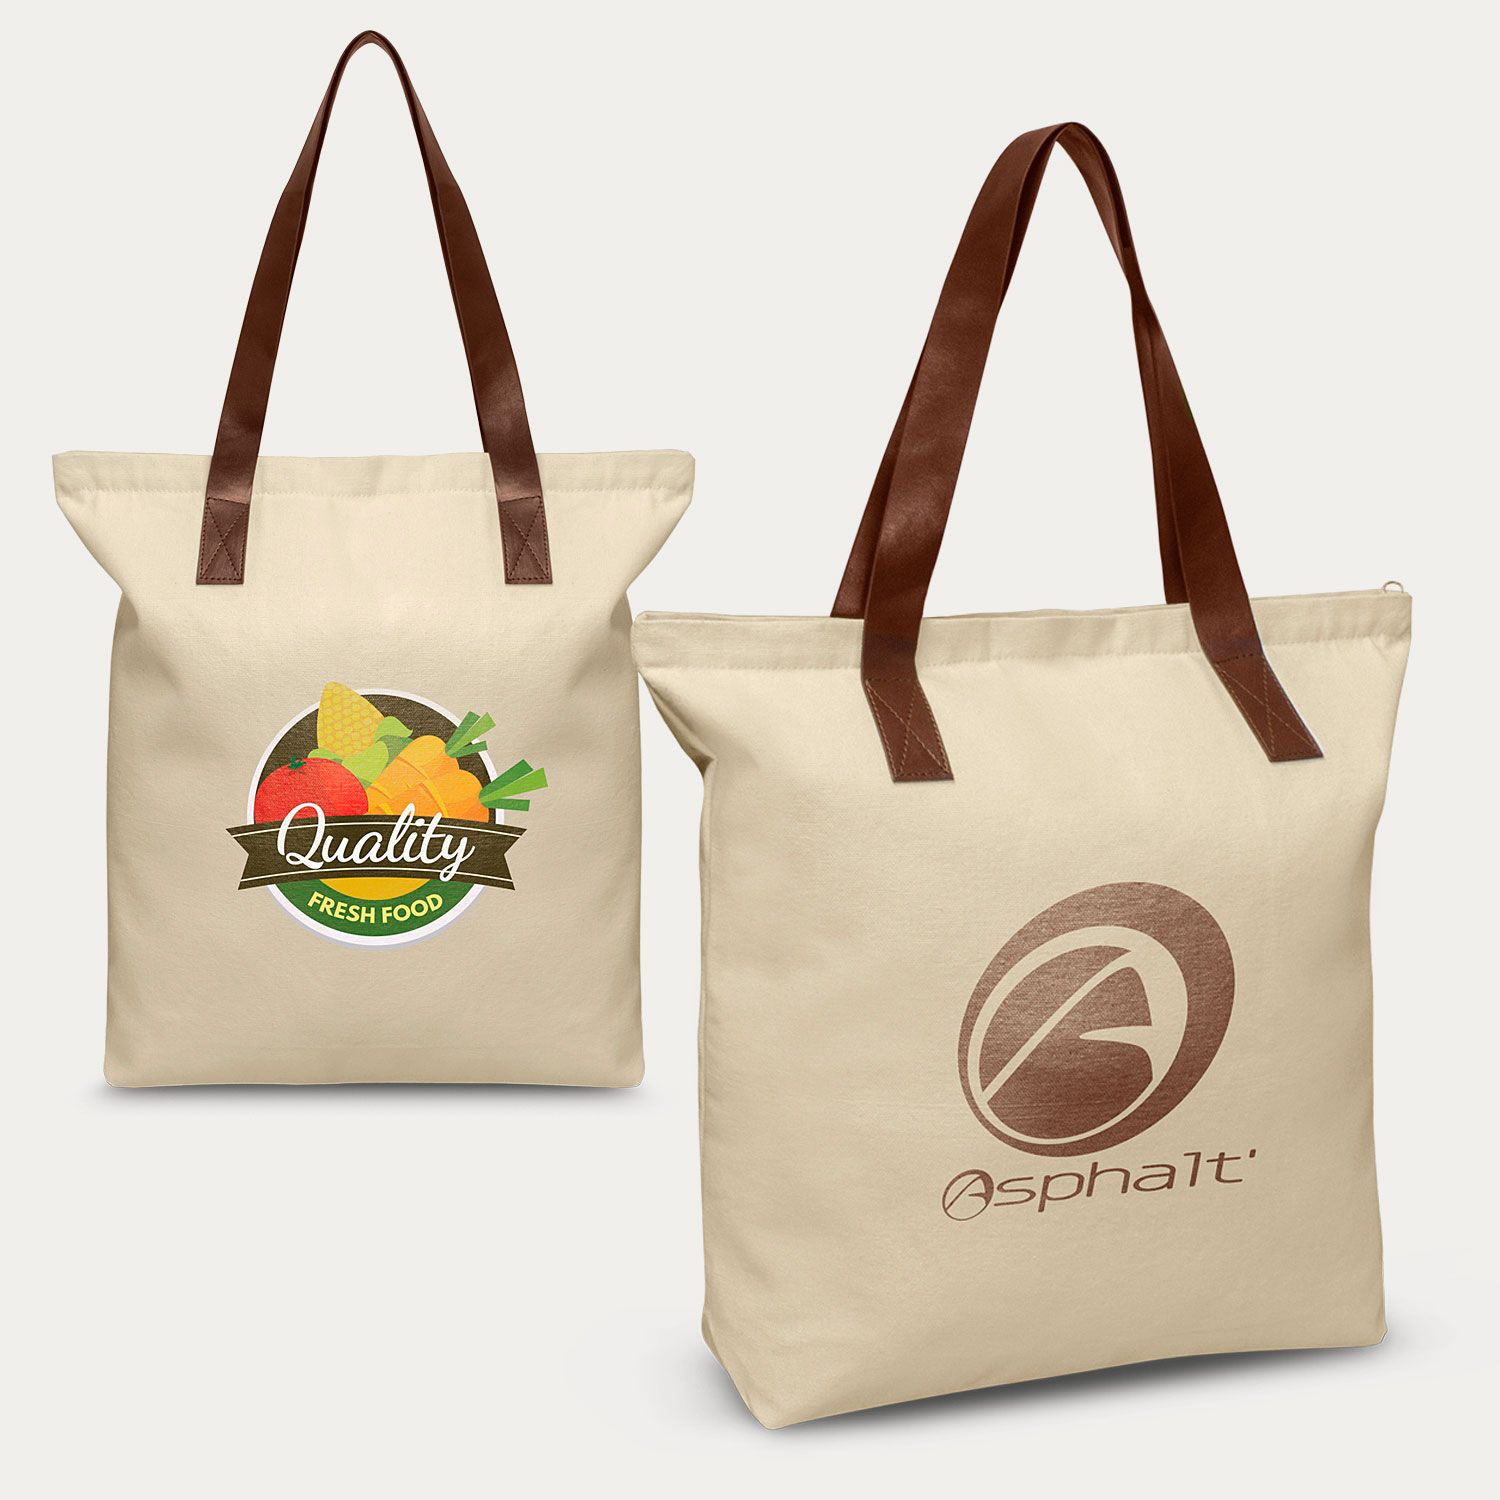 Promote your business with custom printed Ascot Tote Bags